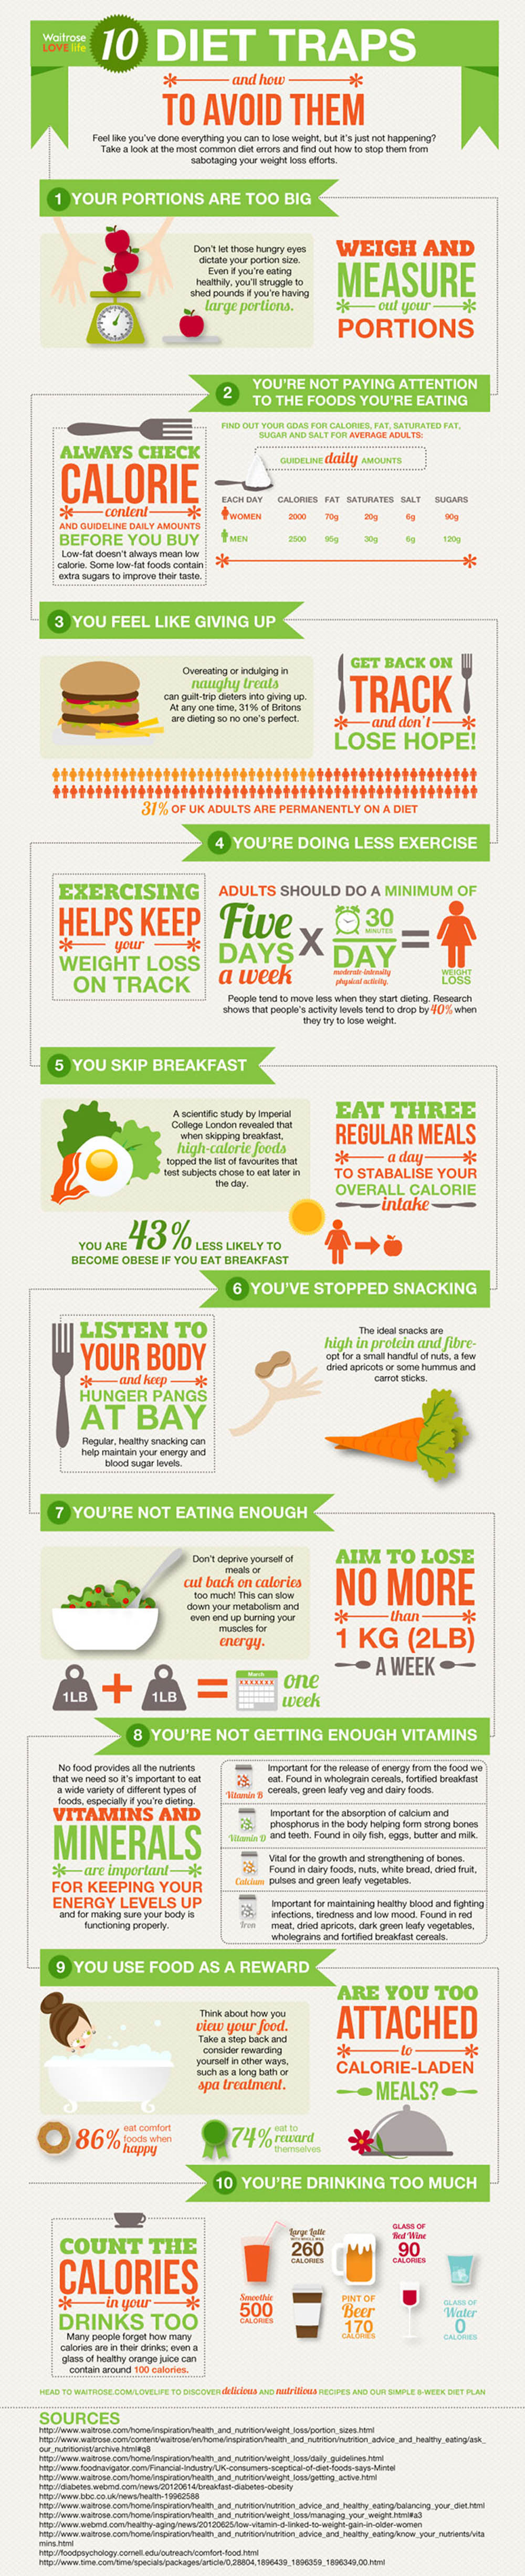 10 Common Diet Traps and How You Can Avoid Them